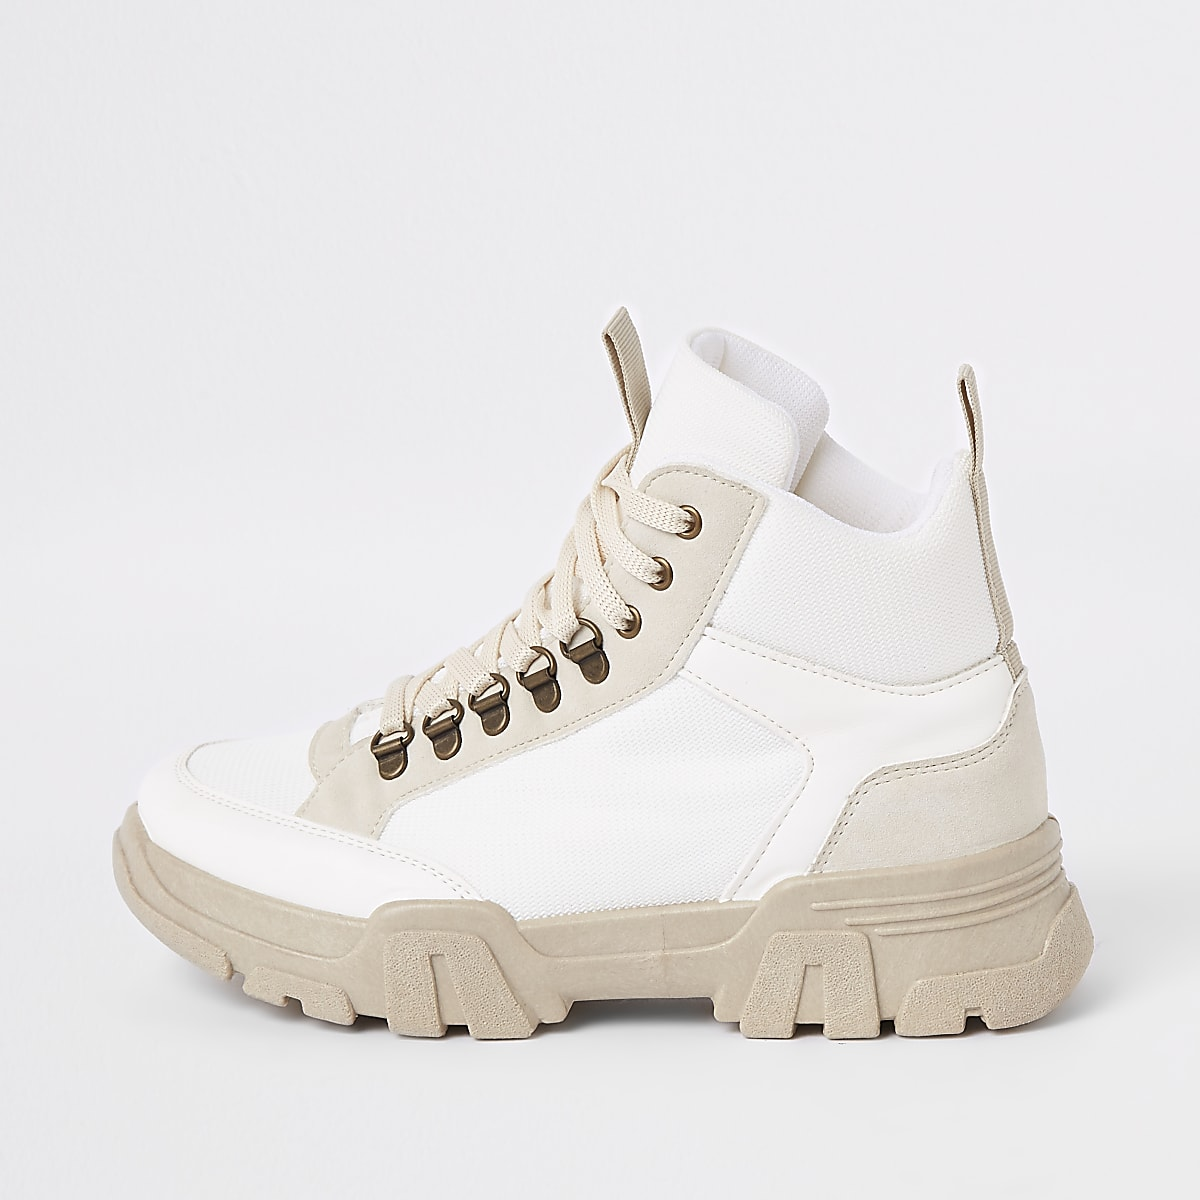 White chunky lace-up sneakers